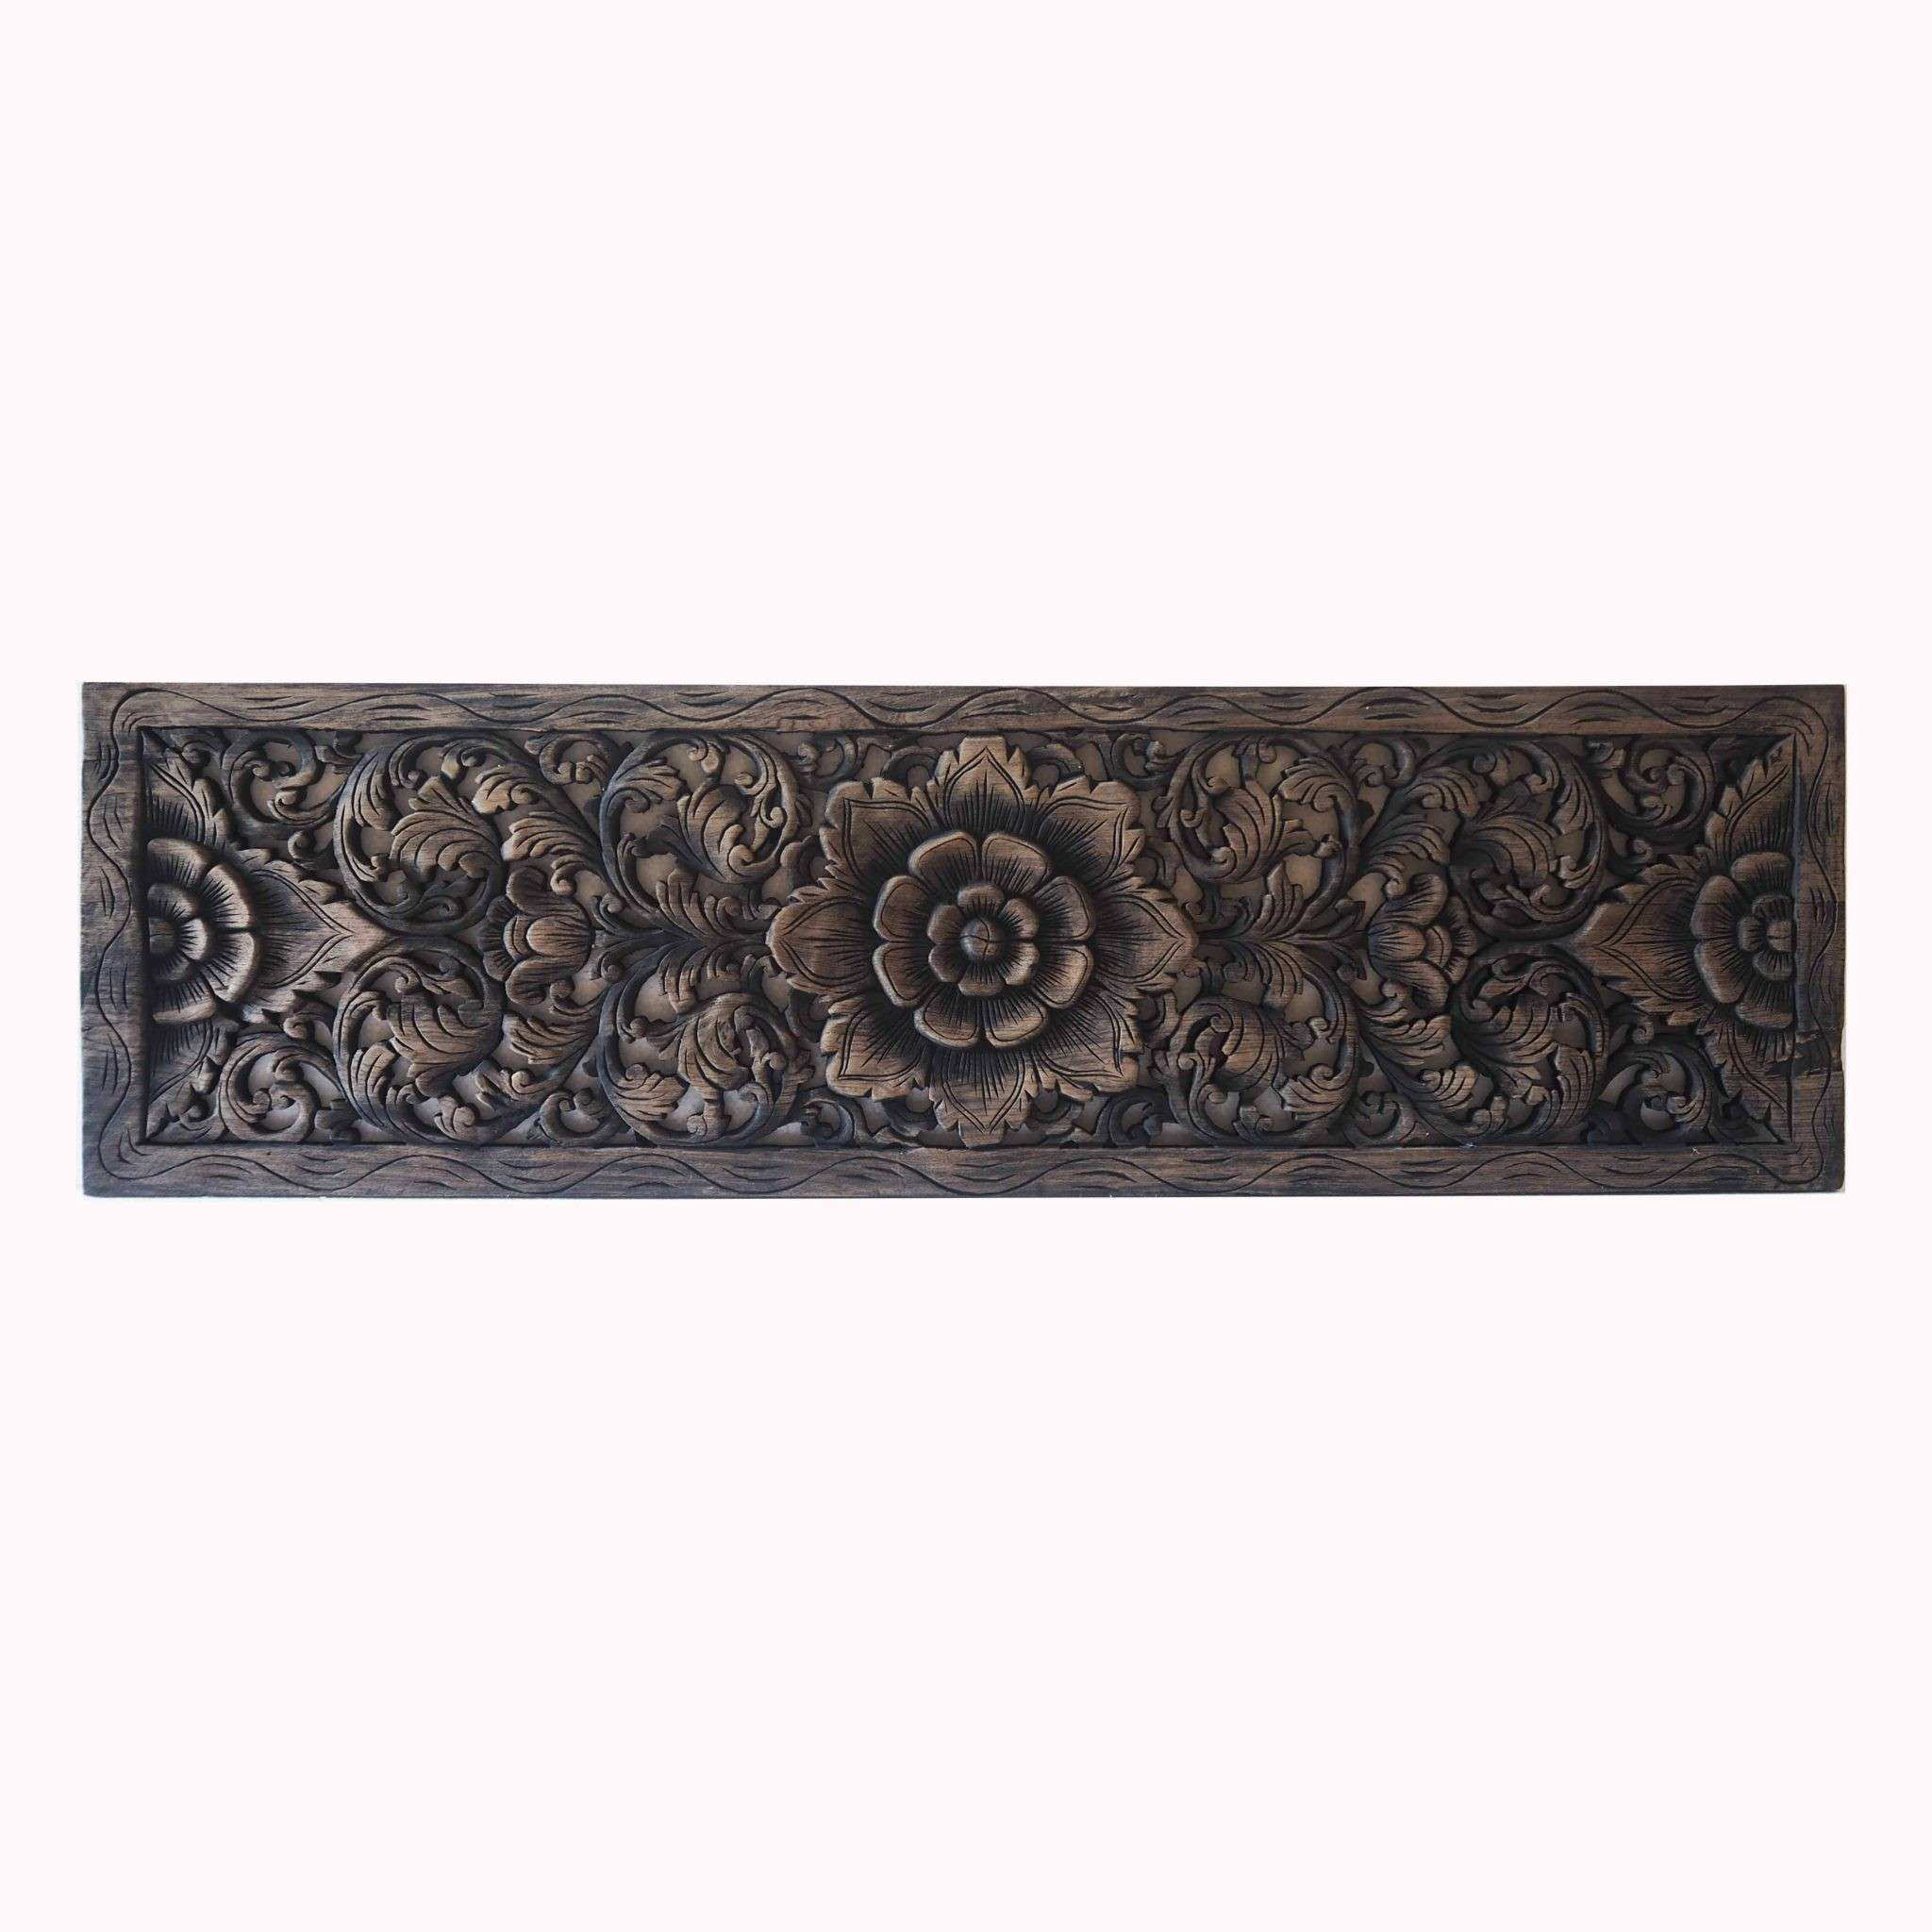 Thai Lotus Wood Carving Wall Art Panel Siam Sawadee